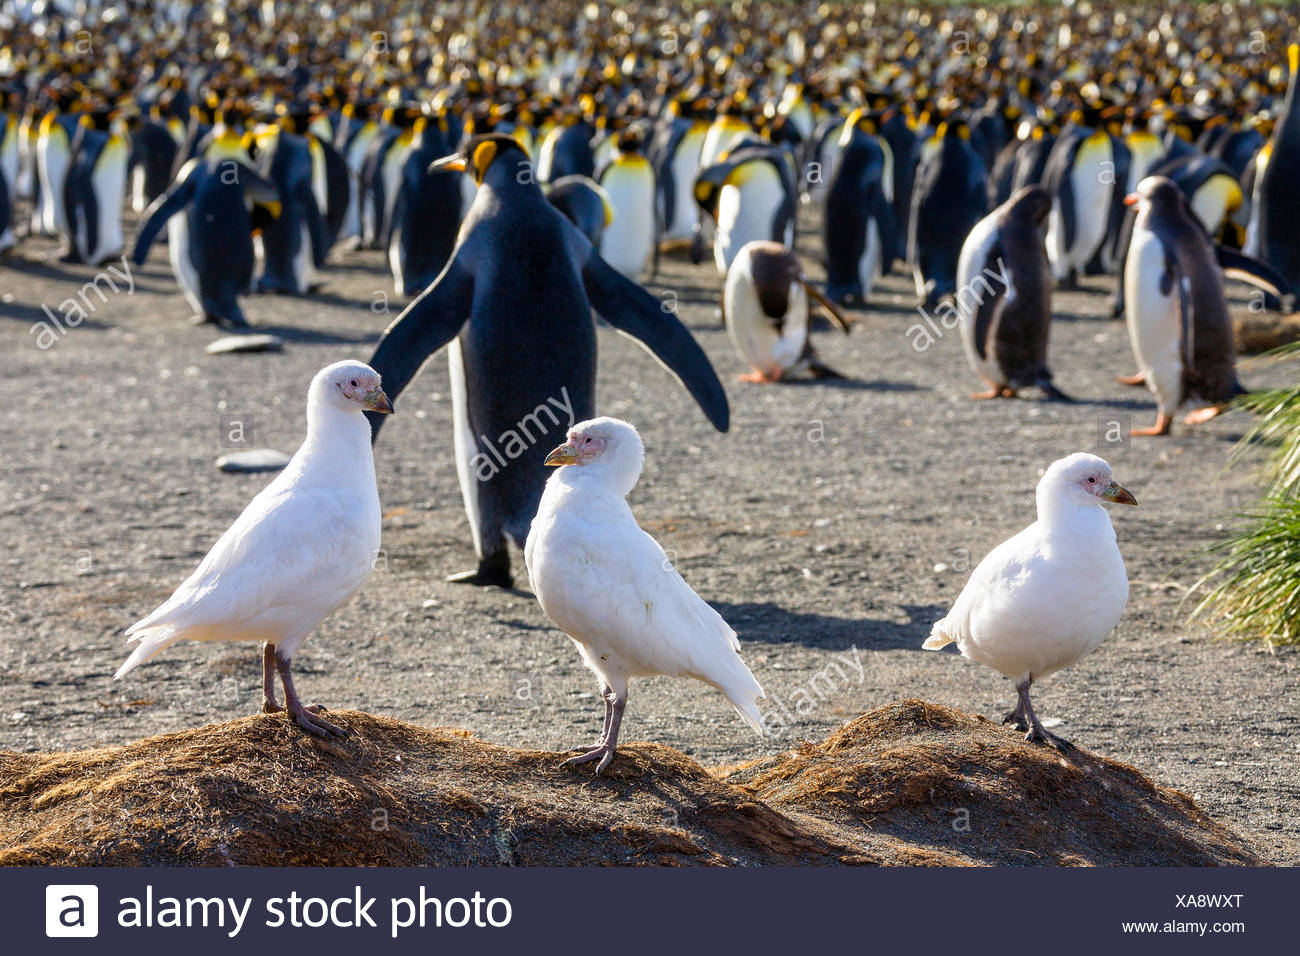 Snowy Sheathbill, Pale-faced sheathbill, Paddy (Chionis alba), three sheathbills in front of a king penguin colony, Antarctica, Suedgeorgien - Stock Image